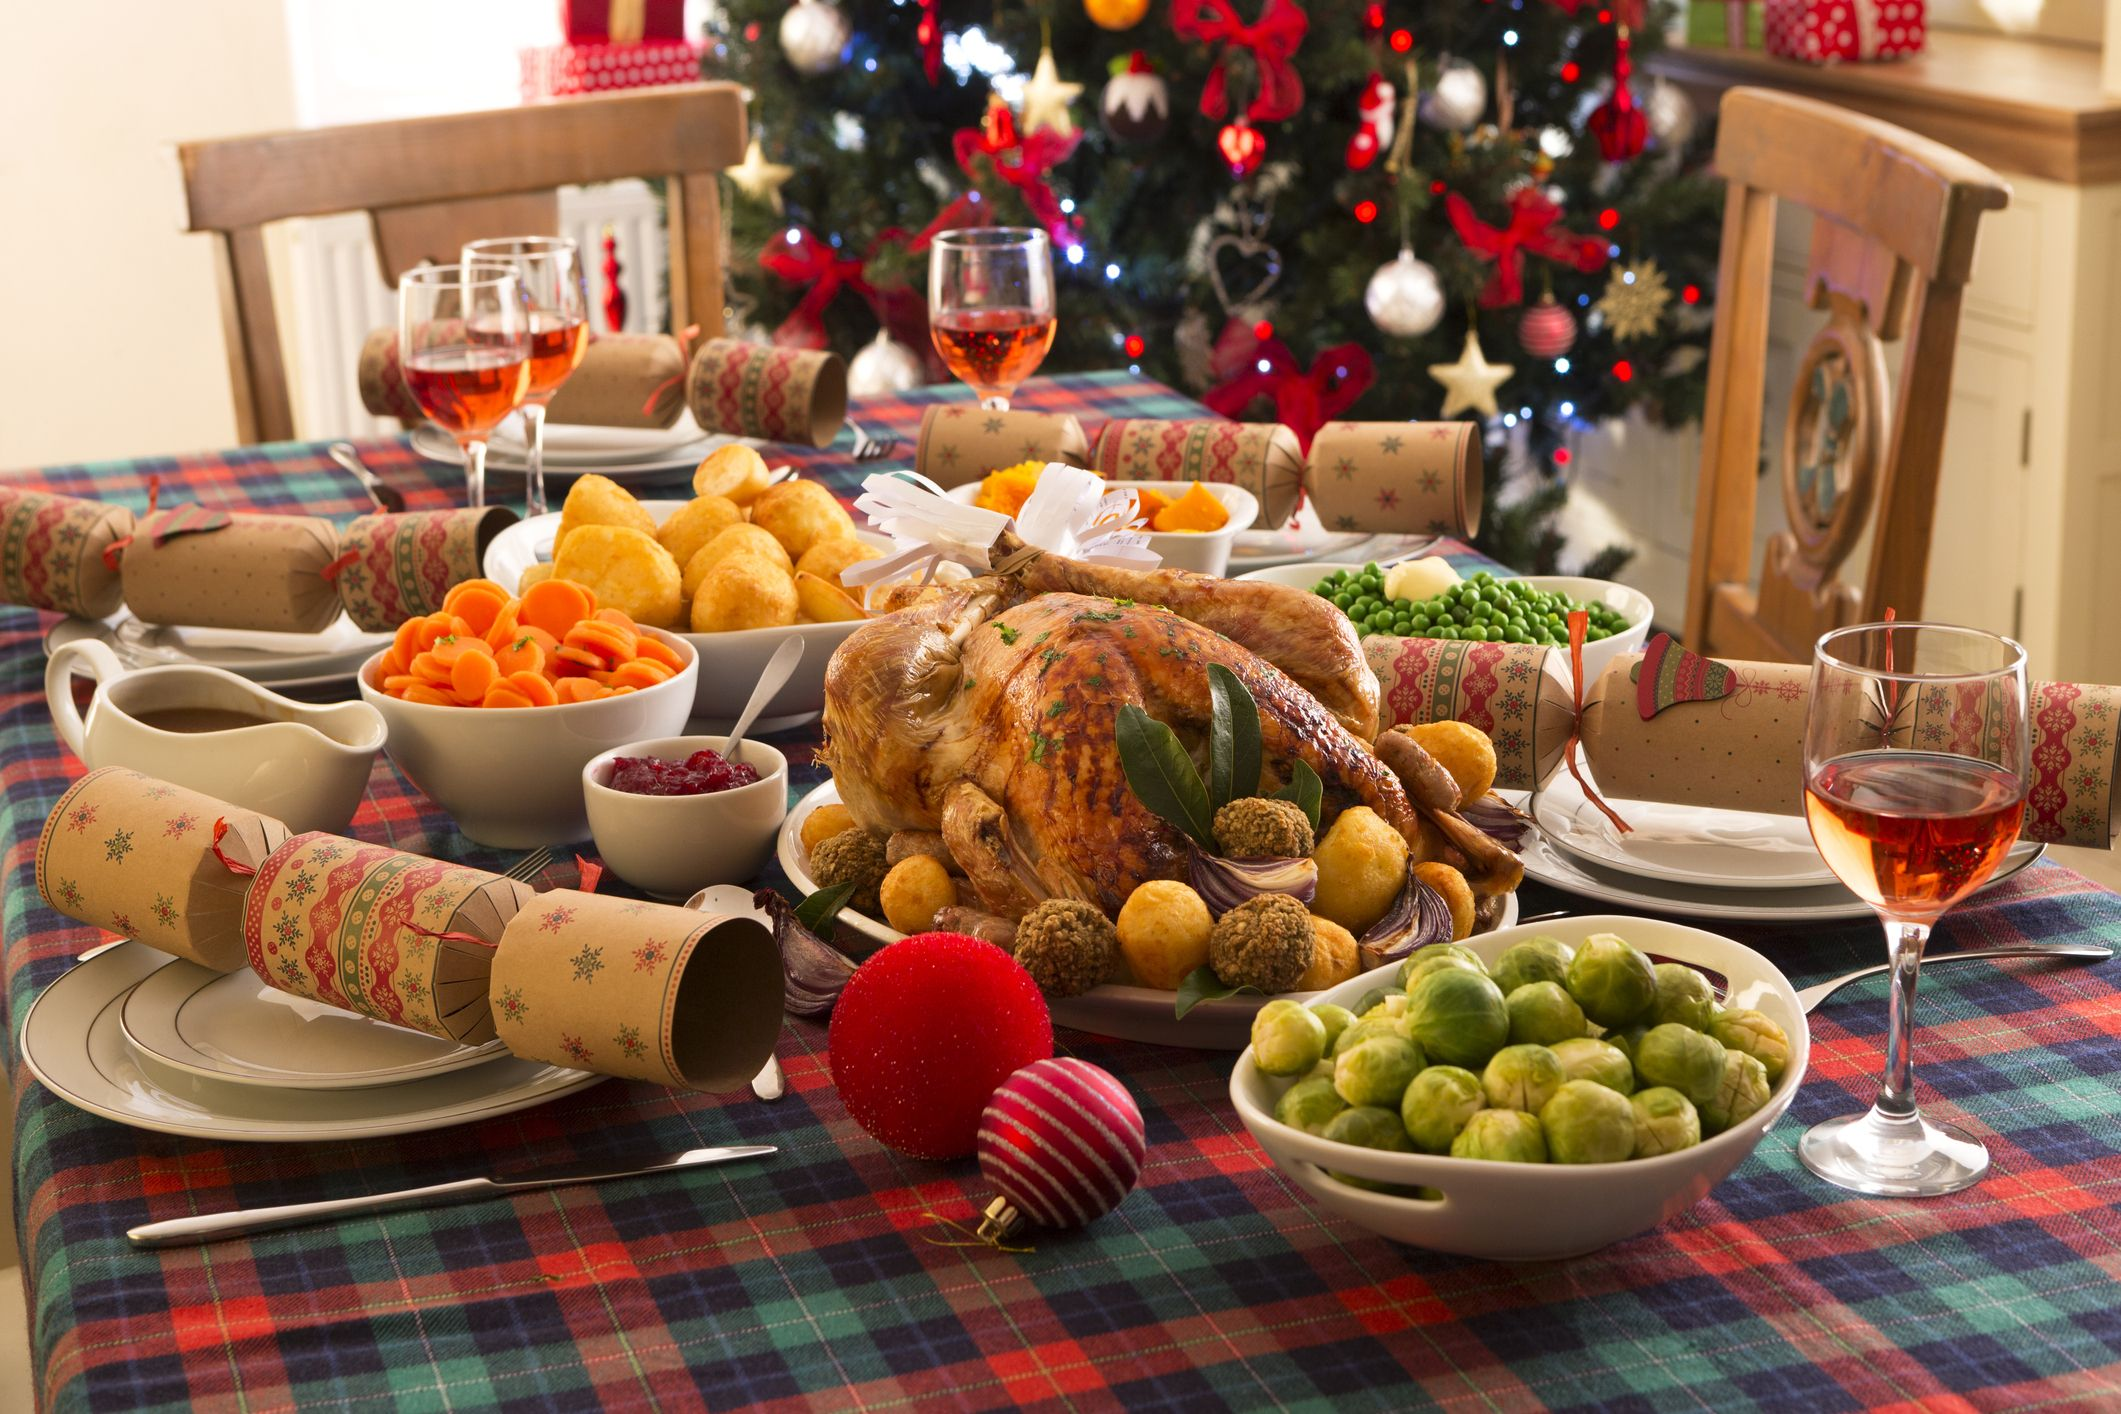 How To Host Christmas Dinner Without Having A Meltdown